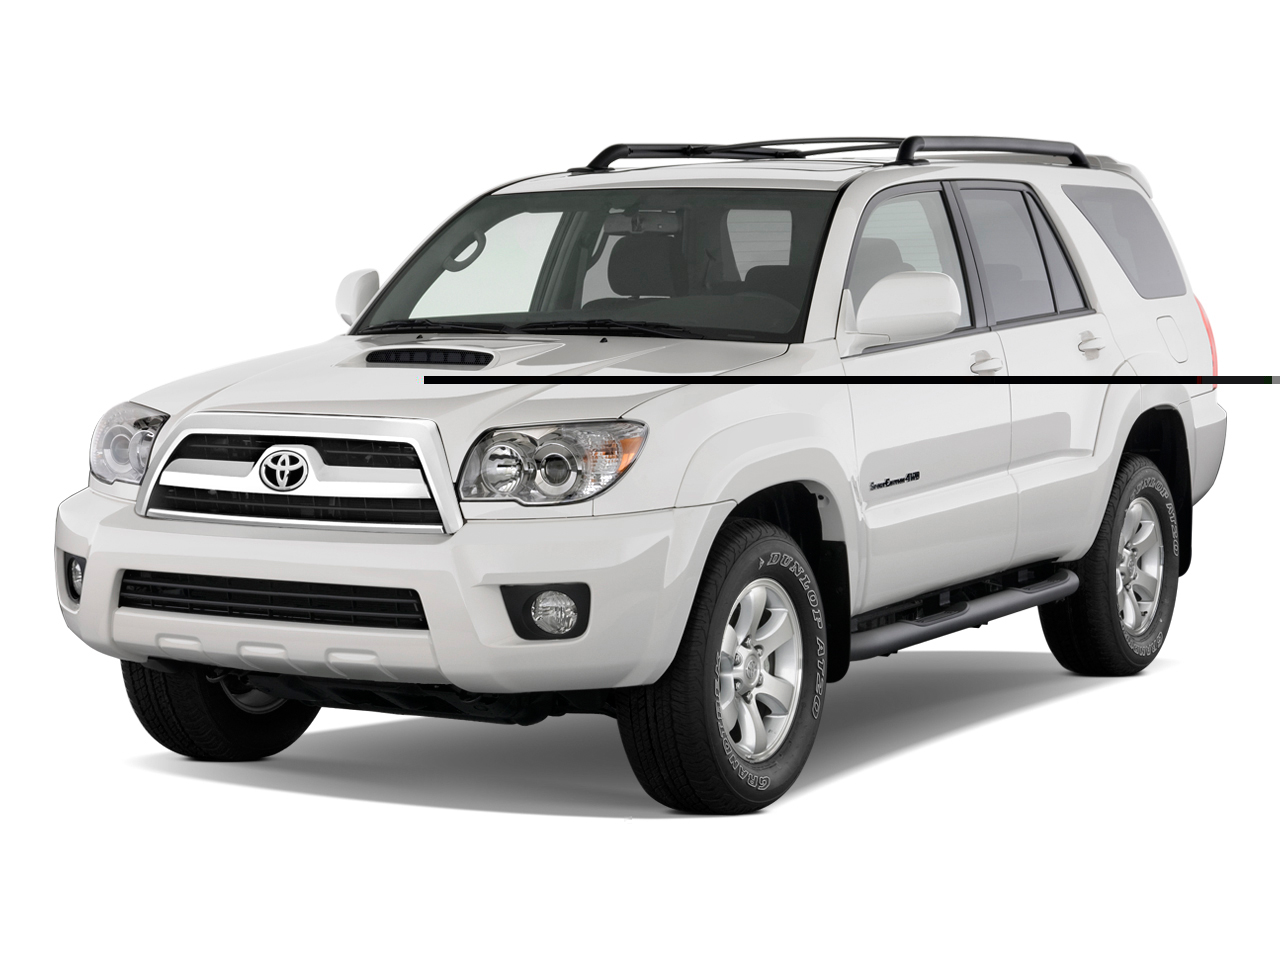 2009 Toyota 4runner Quick Reference Guide Pdf Instructions Manual Pdf